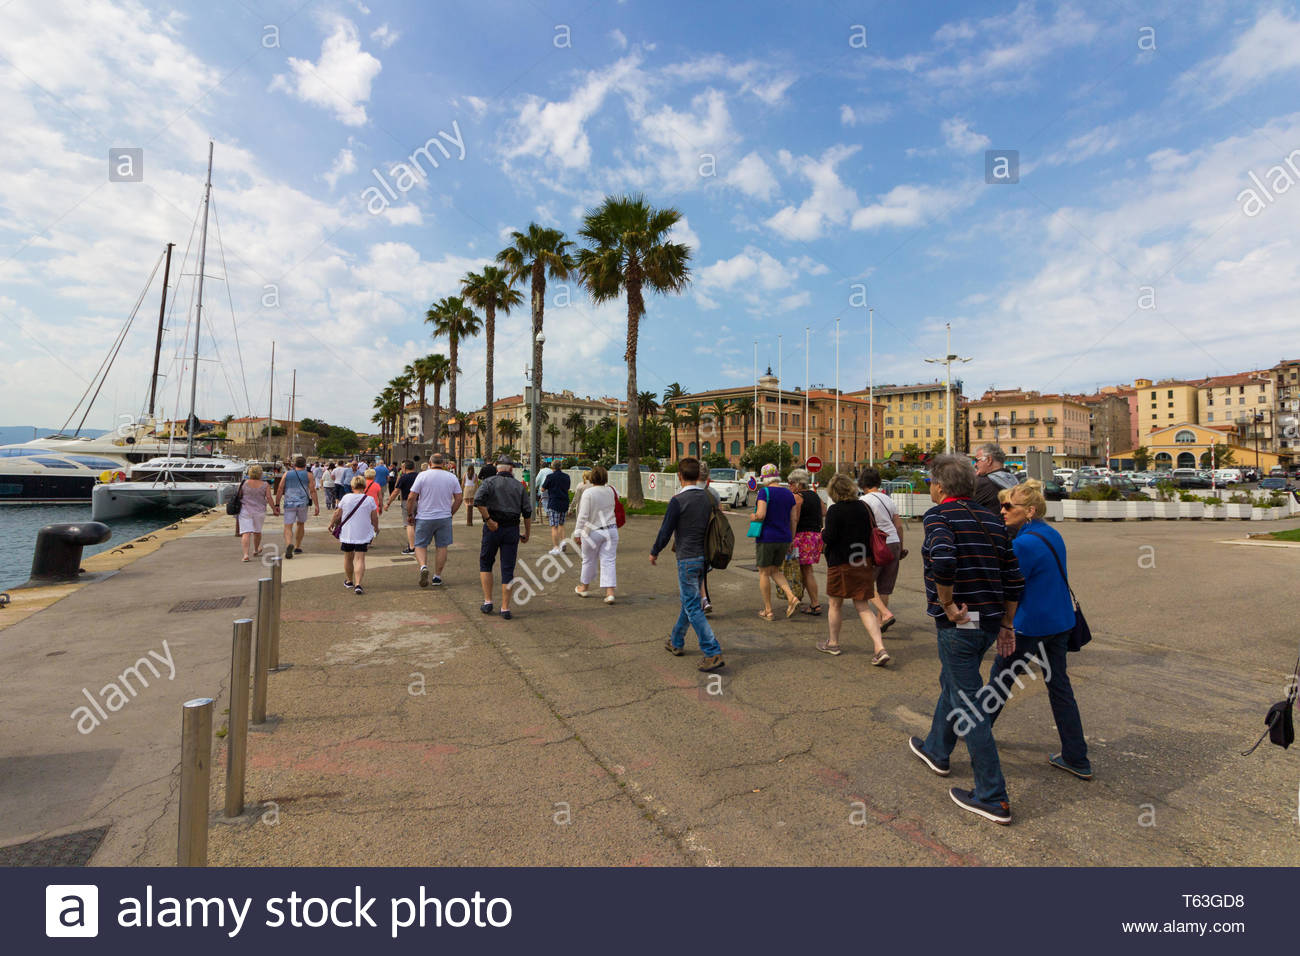 Corsica, France - May, 19, 2017: Tourists walking along the dock at Corsica into the city center - Stock Image